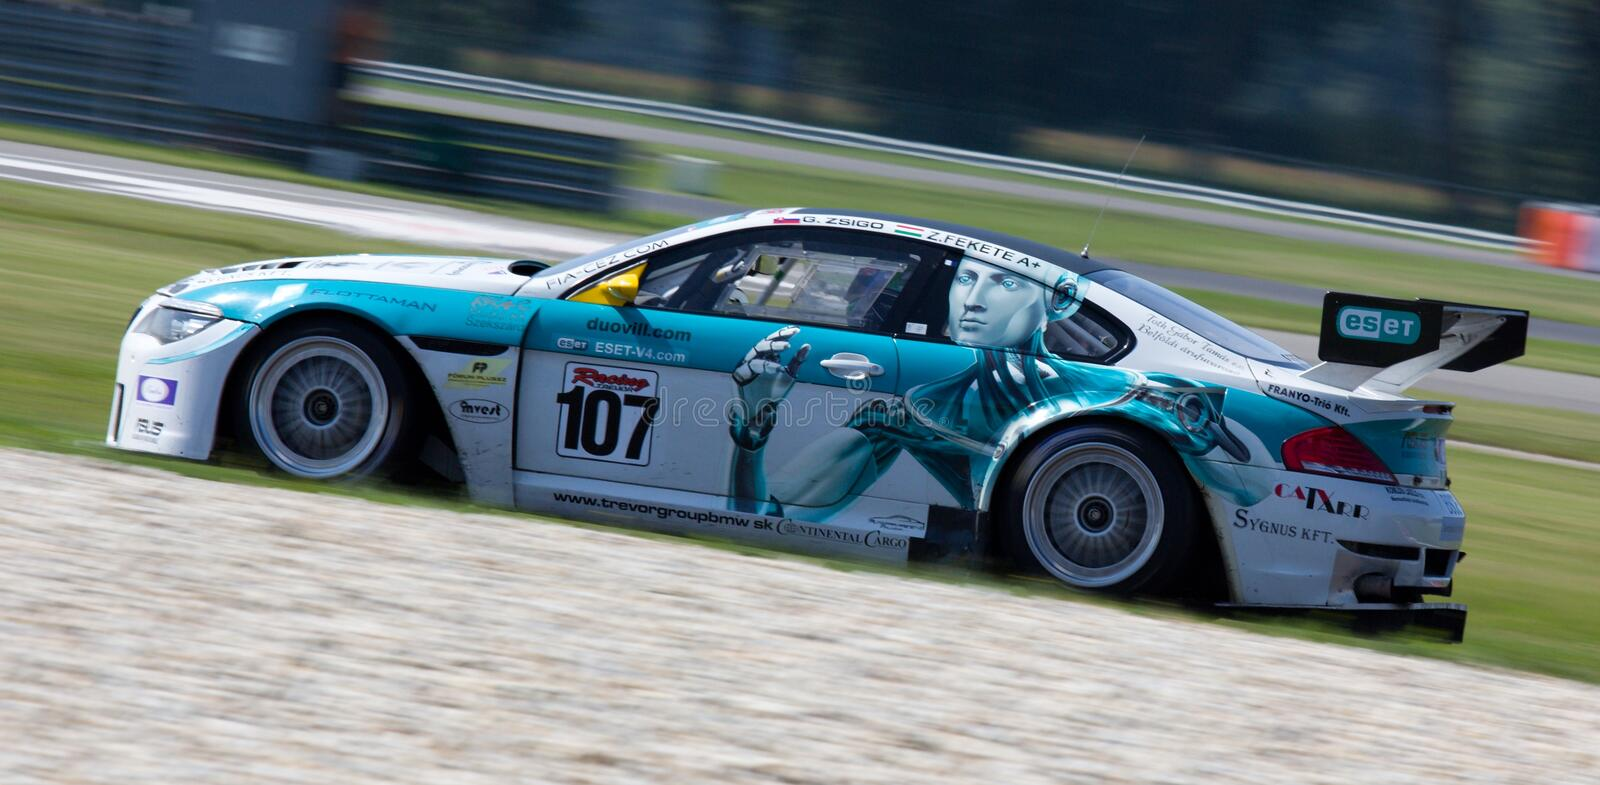 Teal and White Stock Car on Road during Daytime royalty free stock image